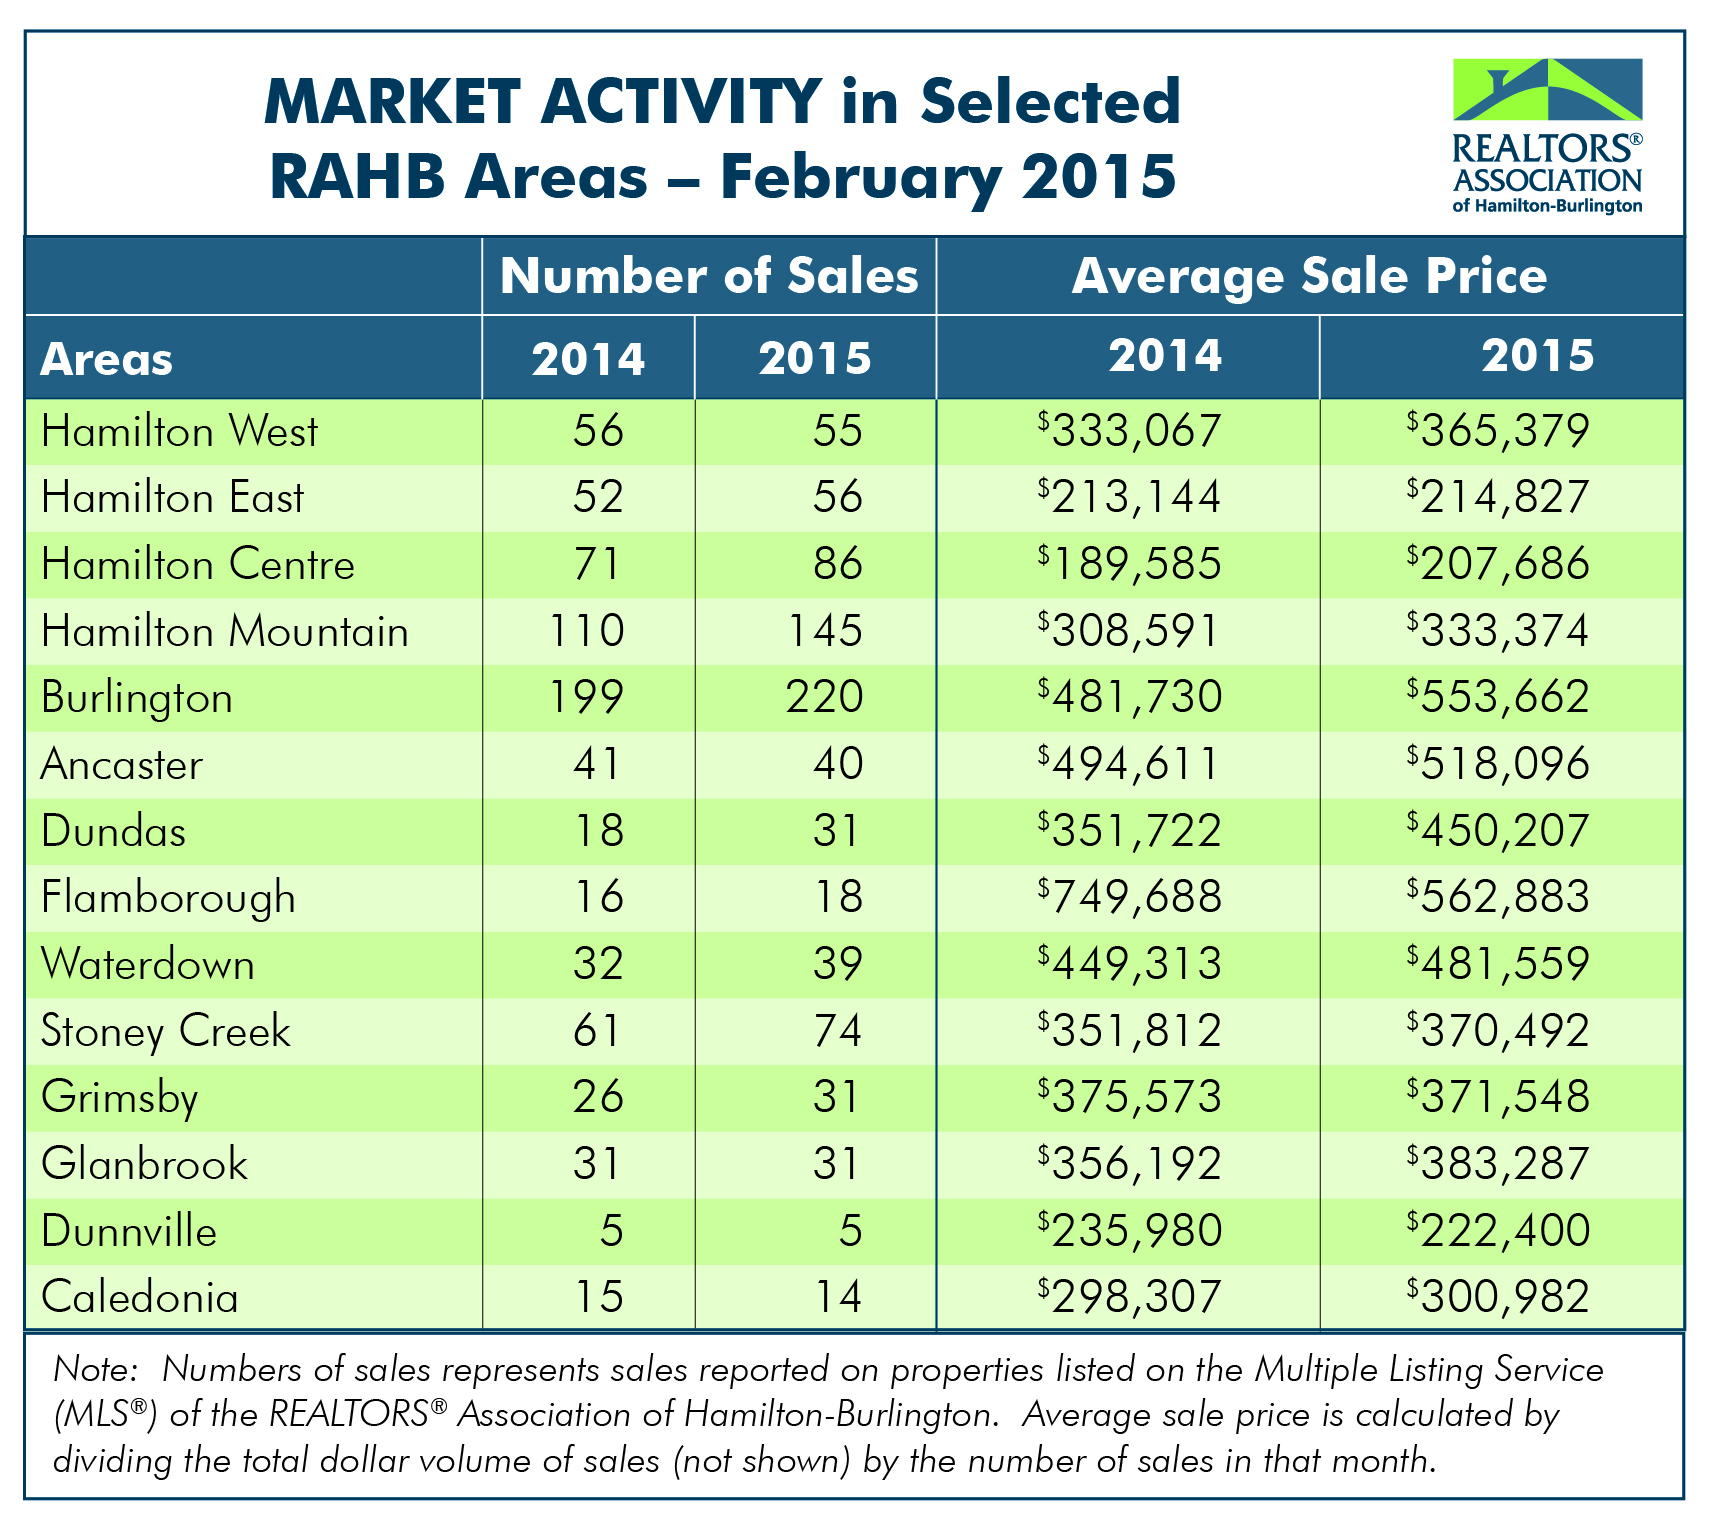 RAHB Market Activity for Feb